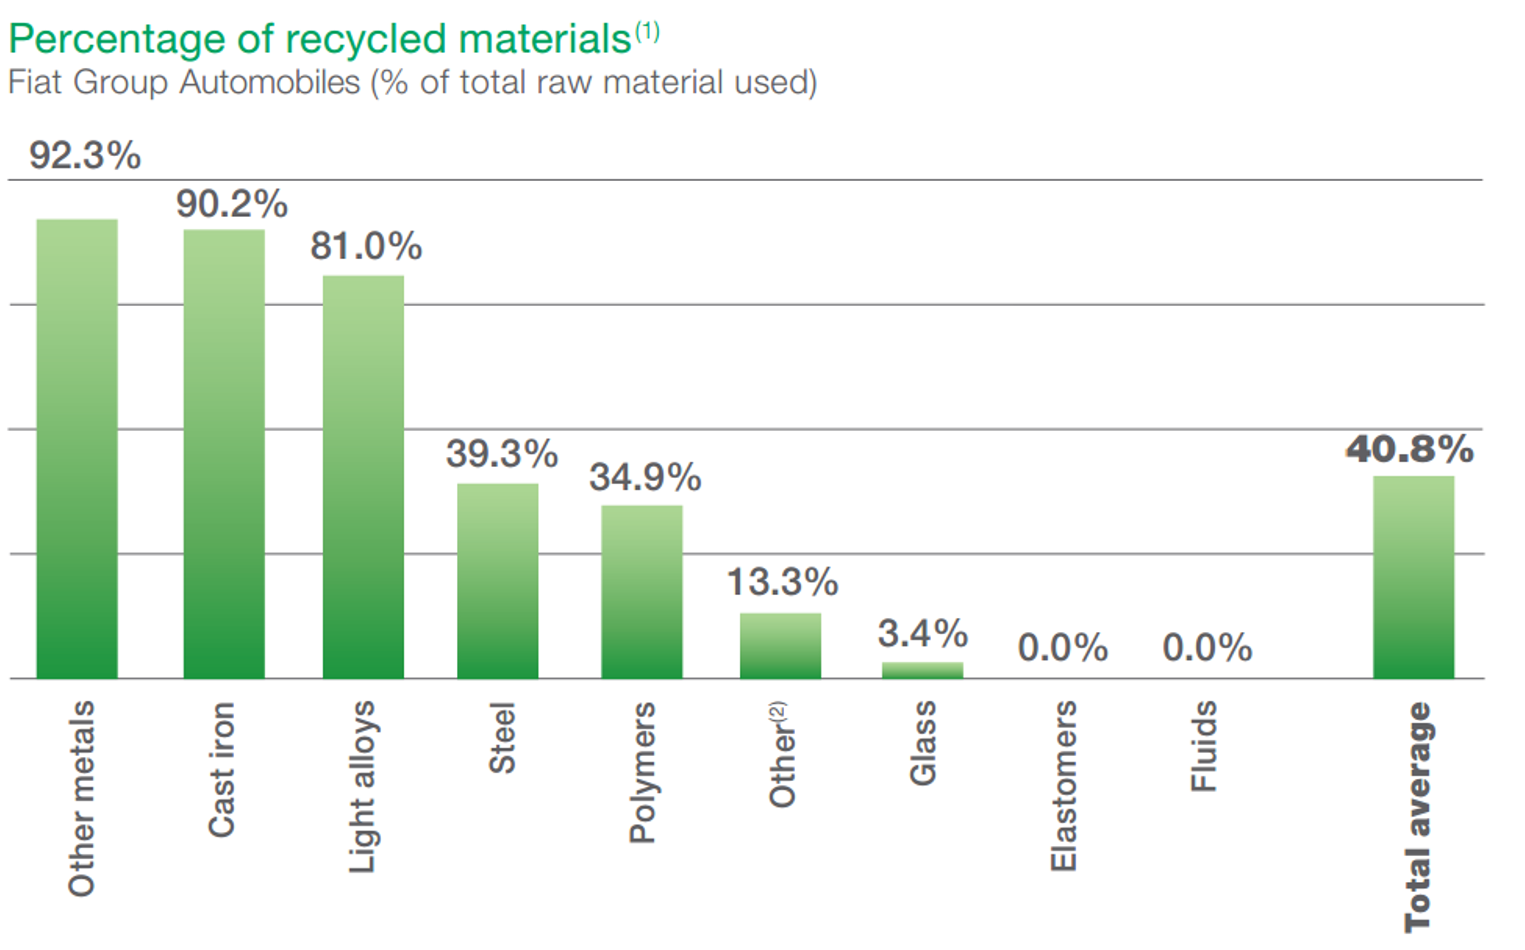 Percentage of Recycled Materials Graph. See text version below for more details.